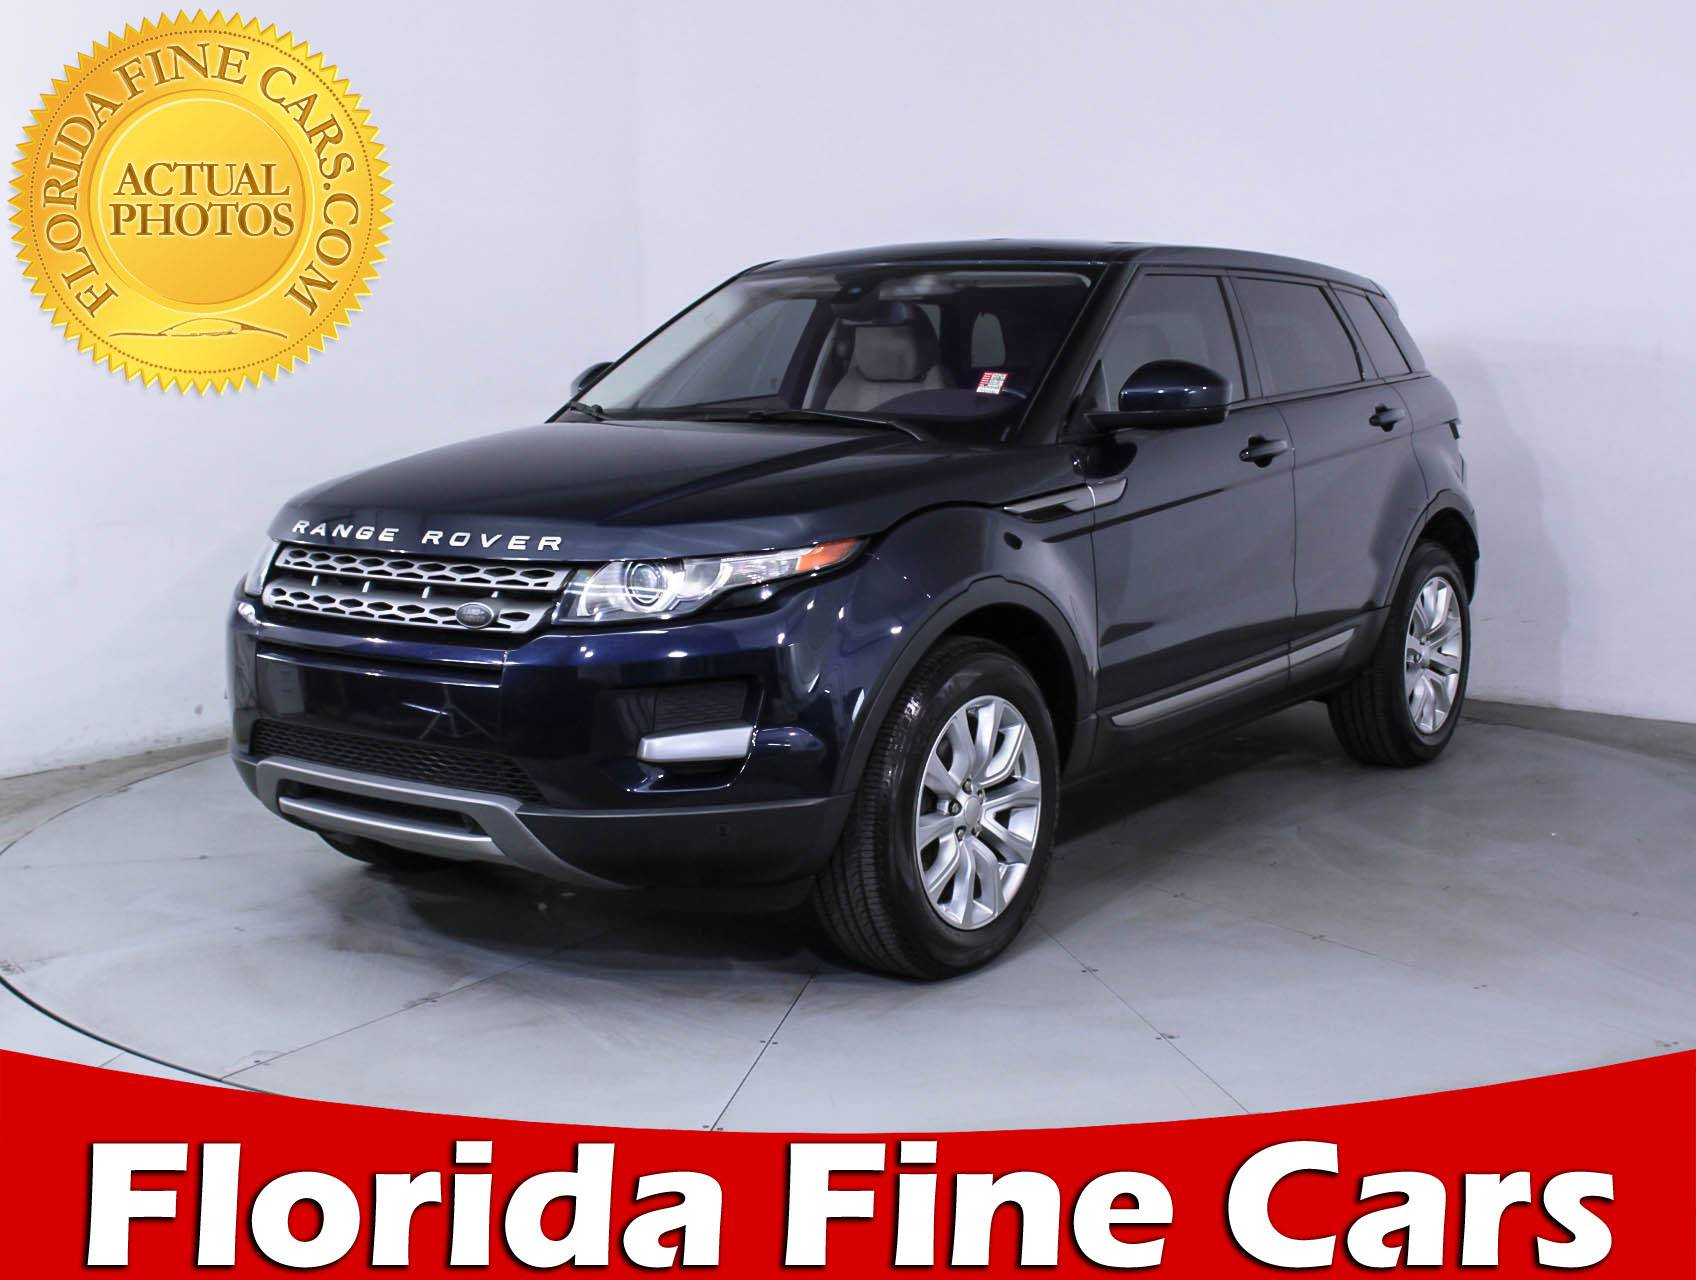 Used 2015 LAND ROVER RANGE ROVER EVOQUE PURE SUV for sale in